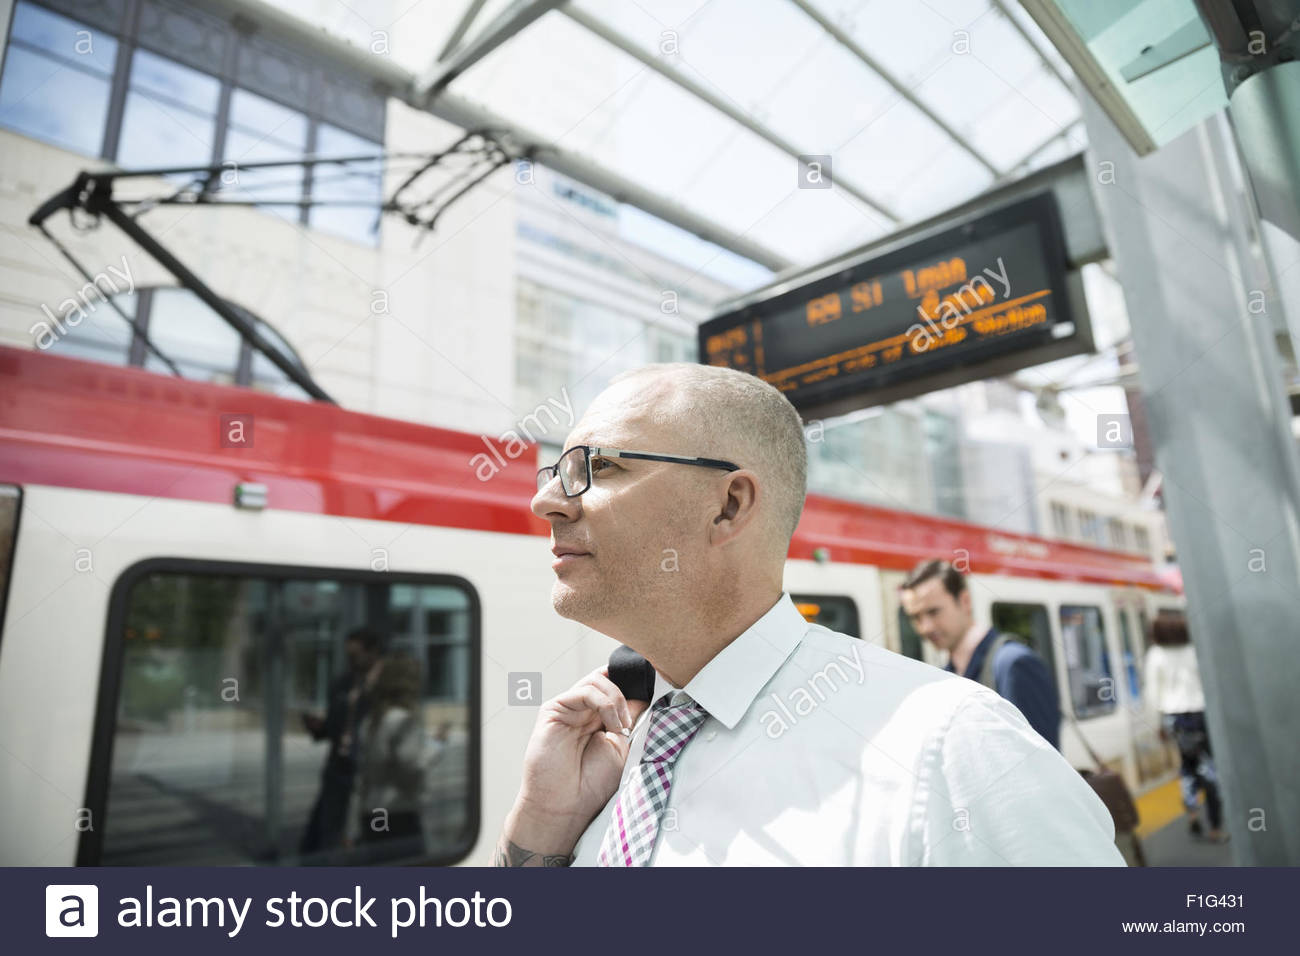 Businessman at train station platform - Stock Image